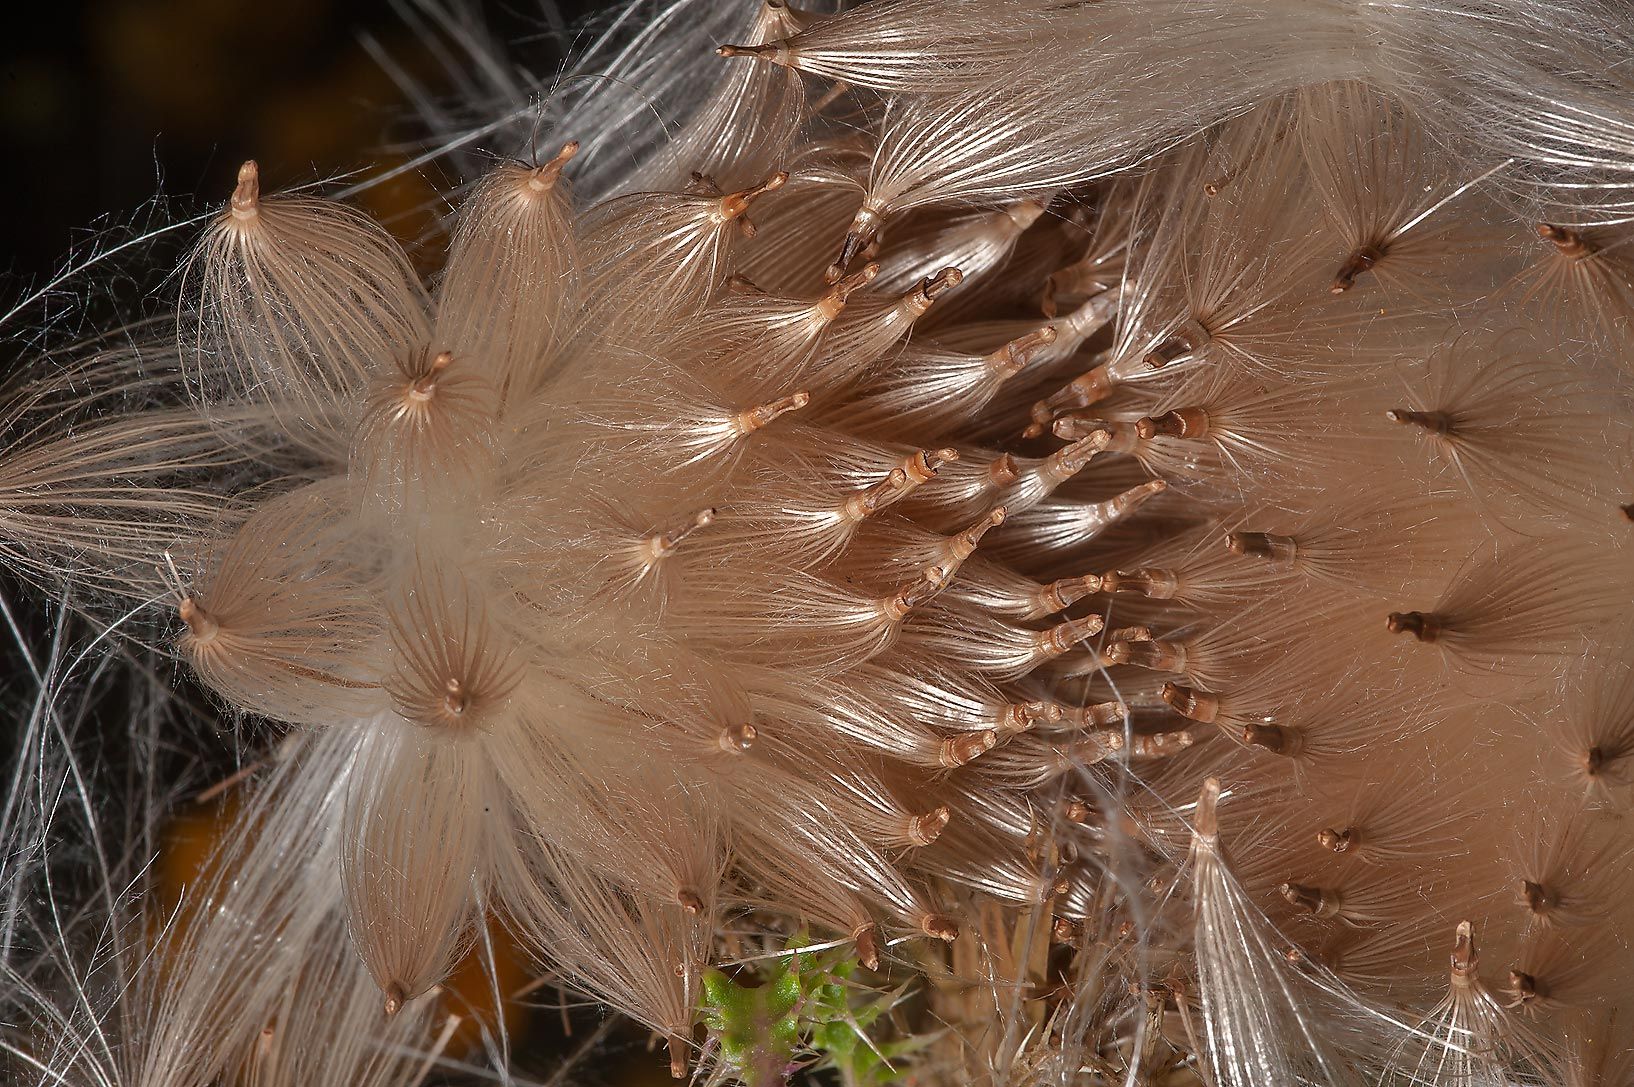 Fluffy seeds of thistle (Cirsium) in Lick Creek Park. College Station, Texas